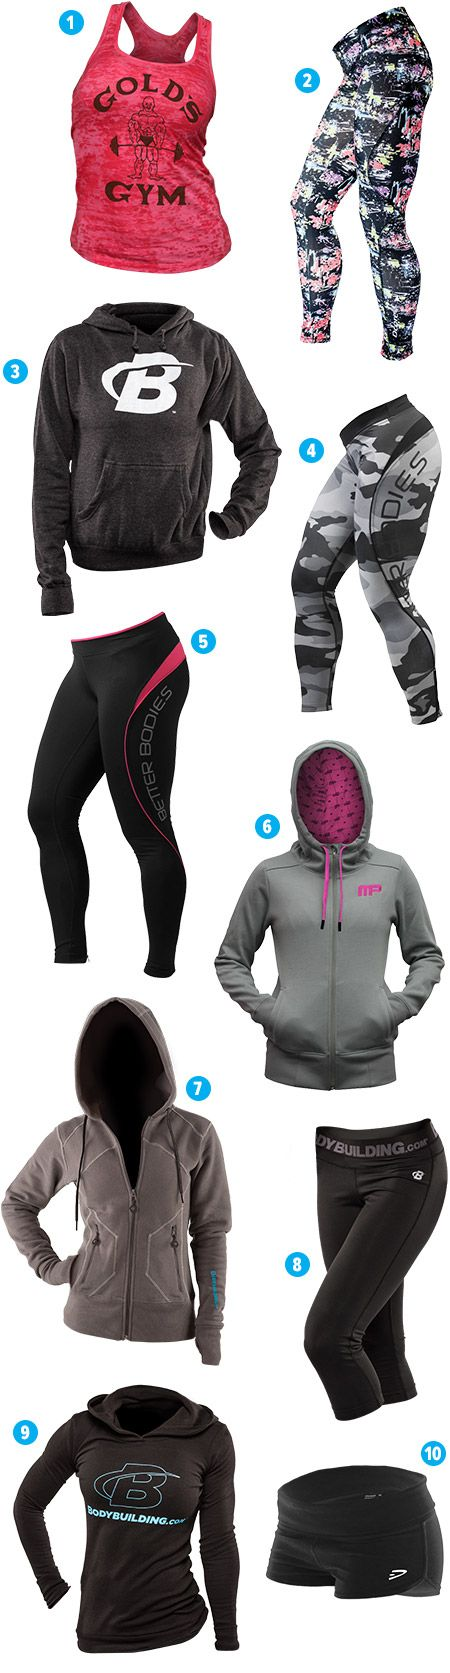 Best Workout Clothes For Women - 2014 Holiday Fit Gift Guide